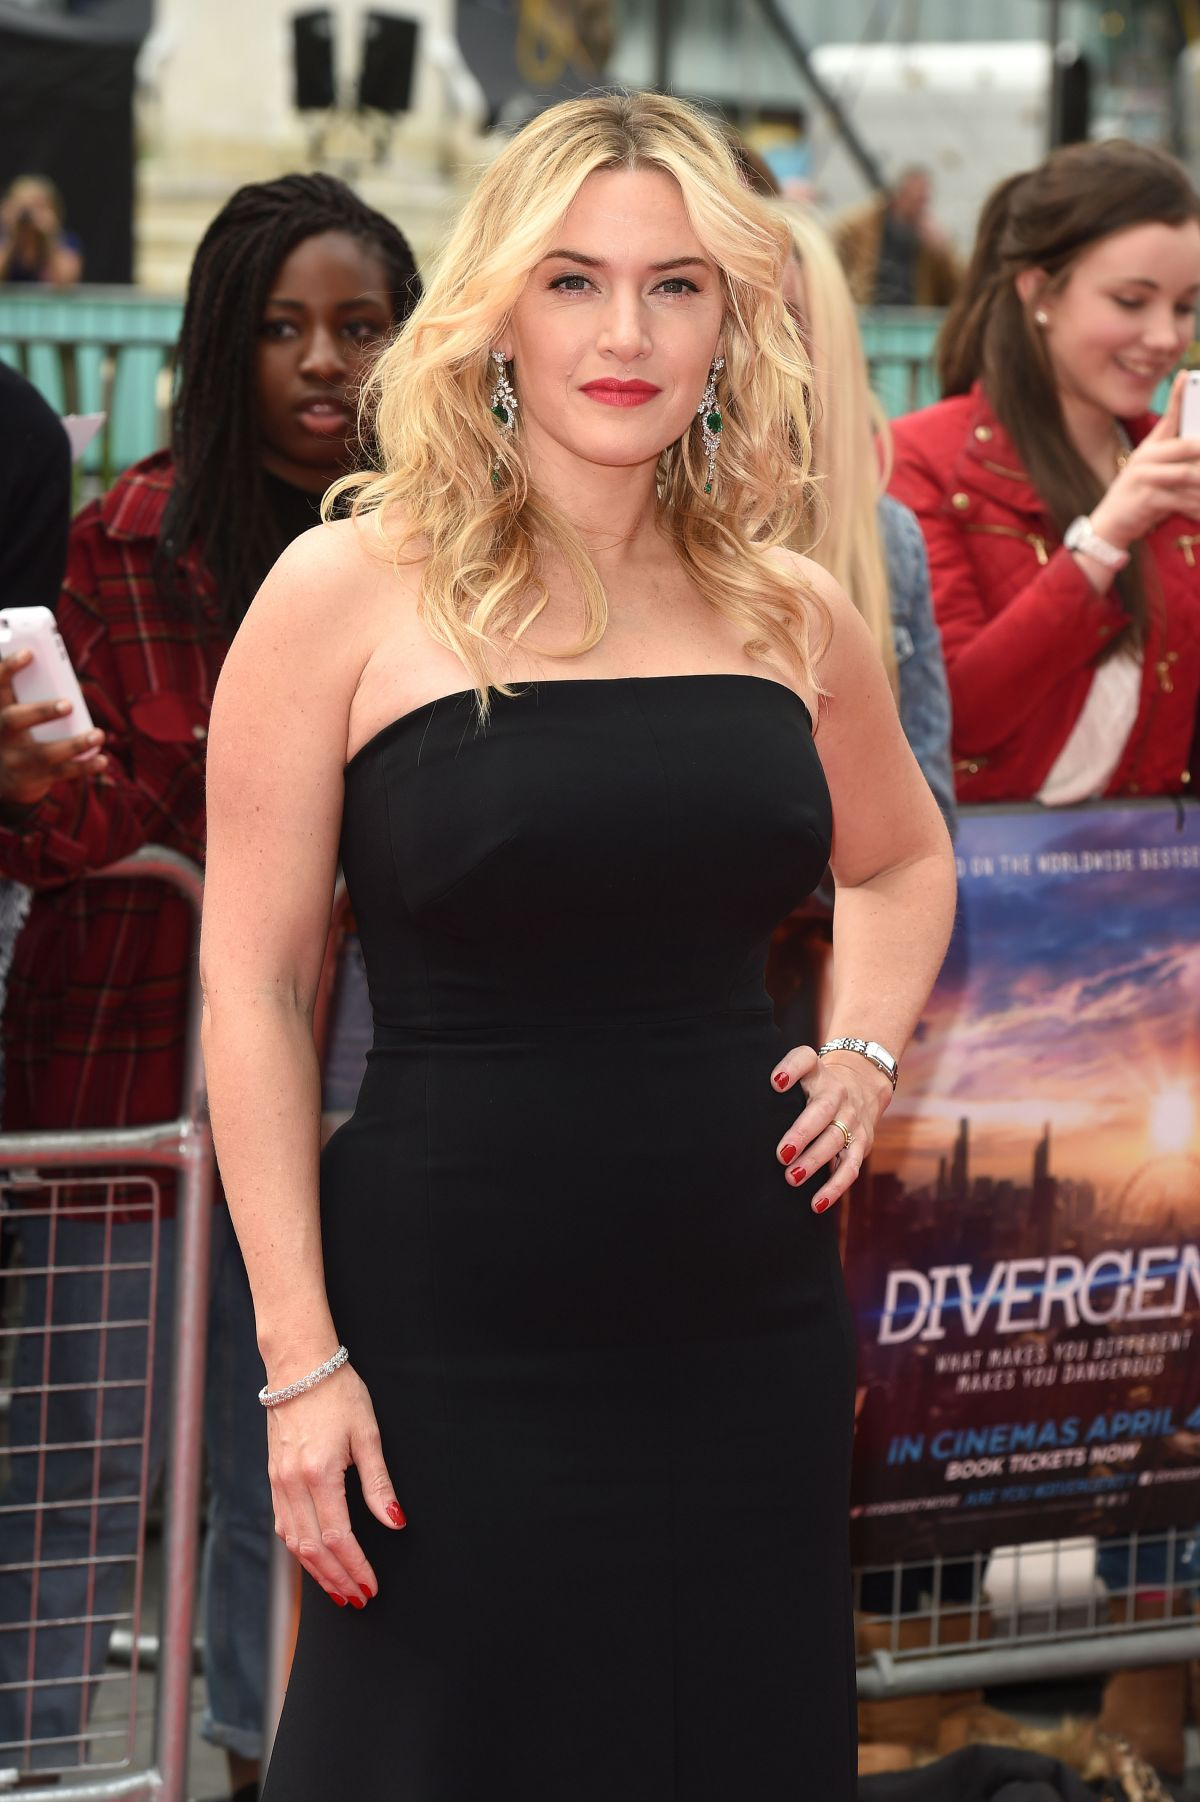 KATE WINSLET at Divergent Premiere in London - HawtCelebs